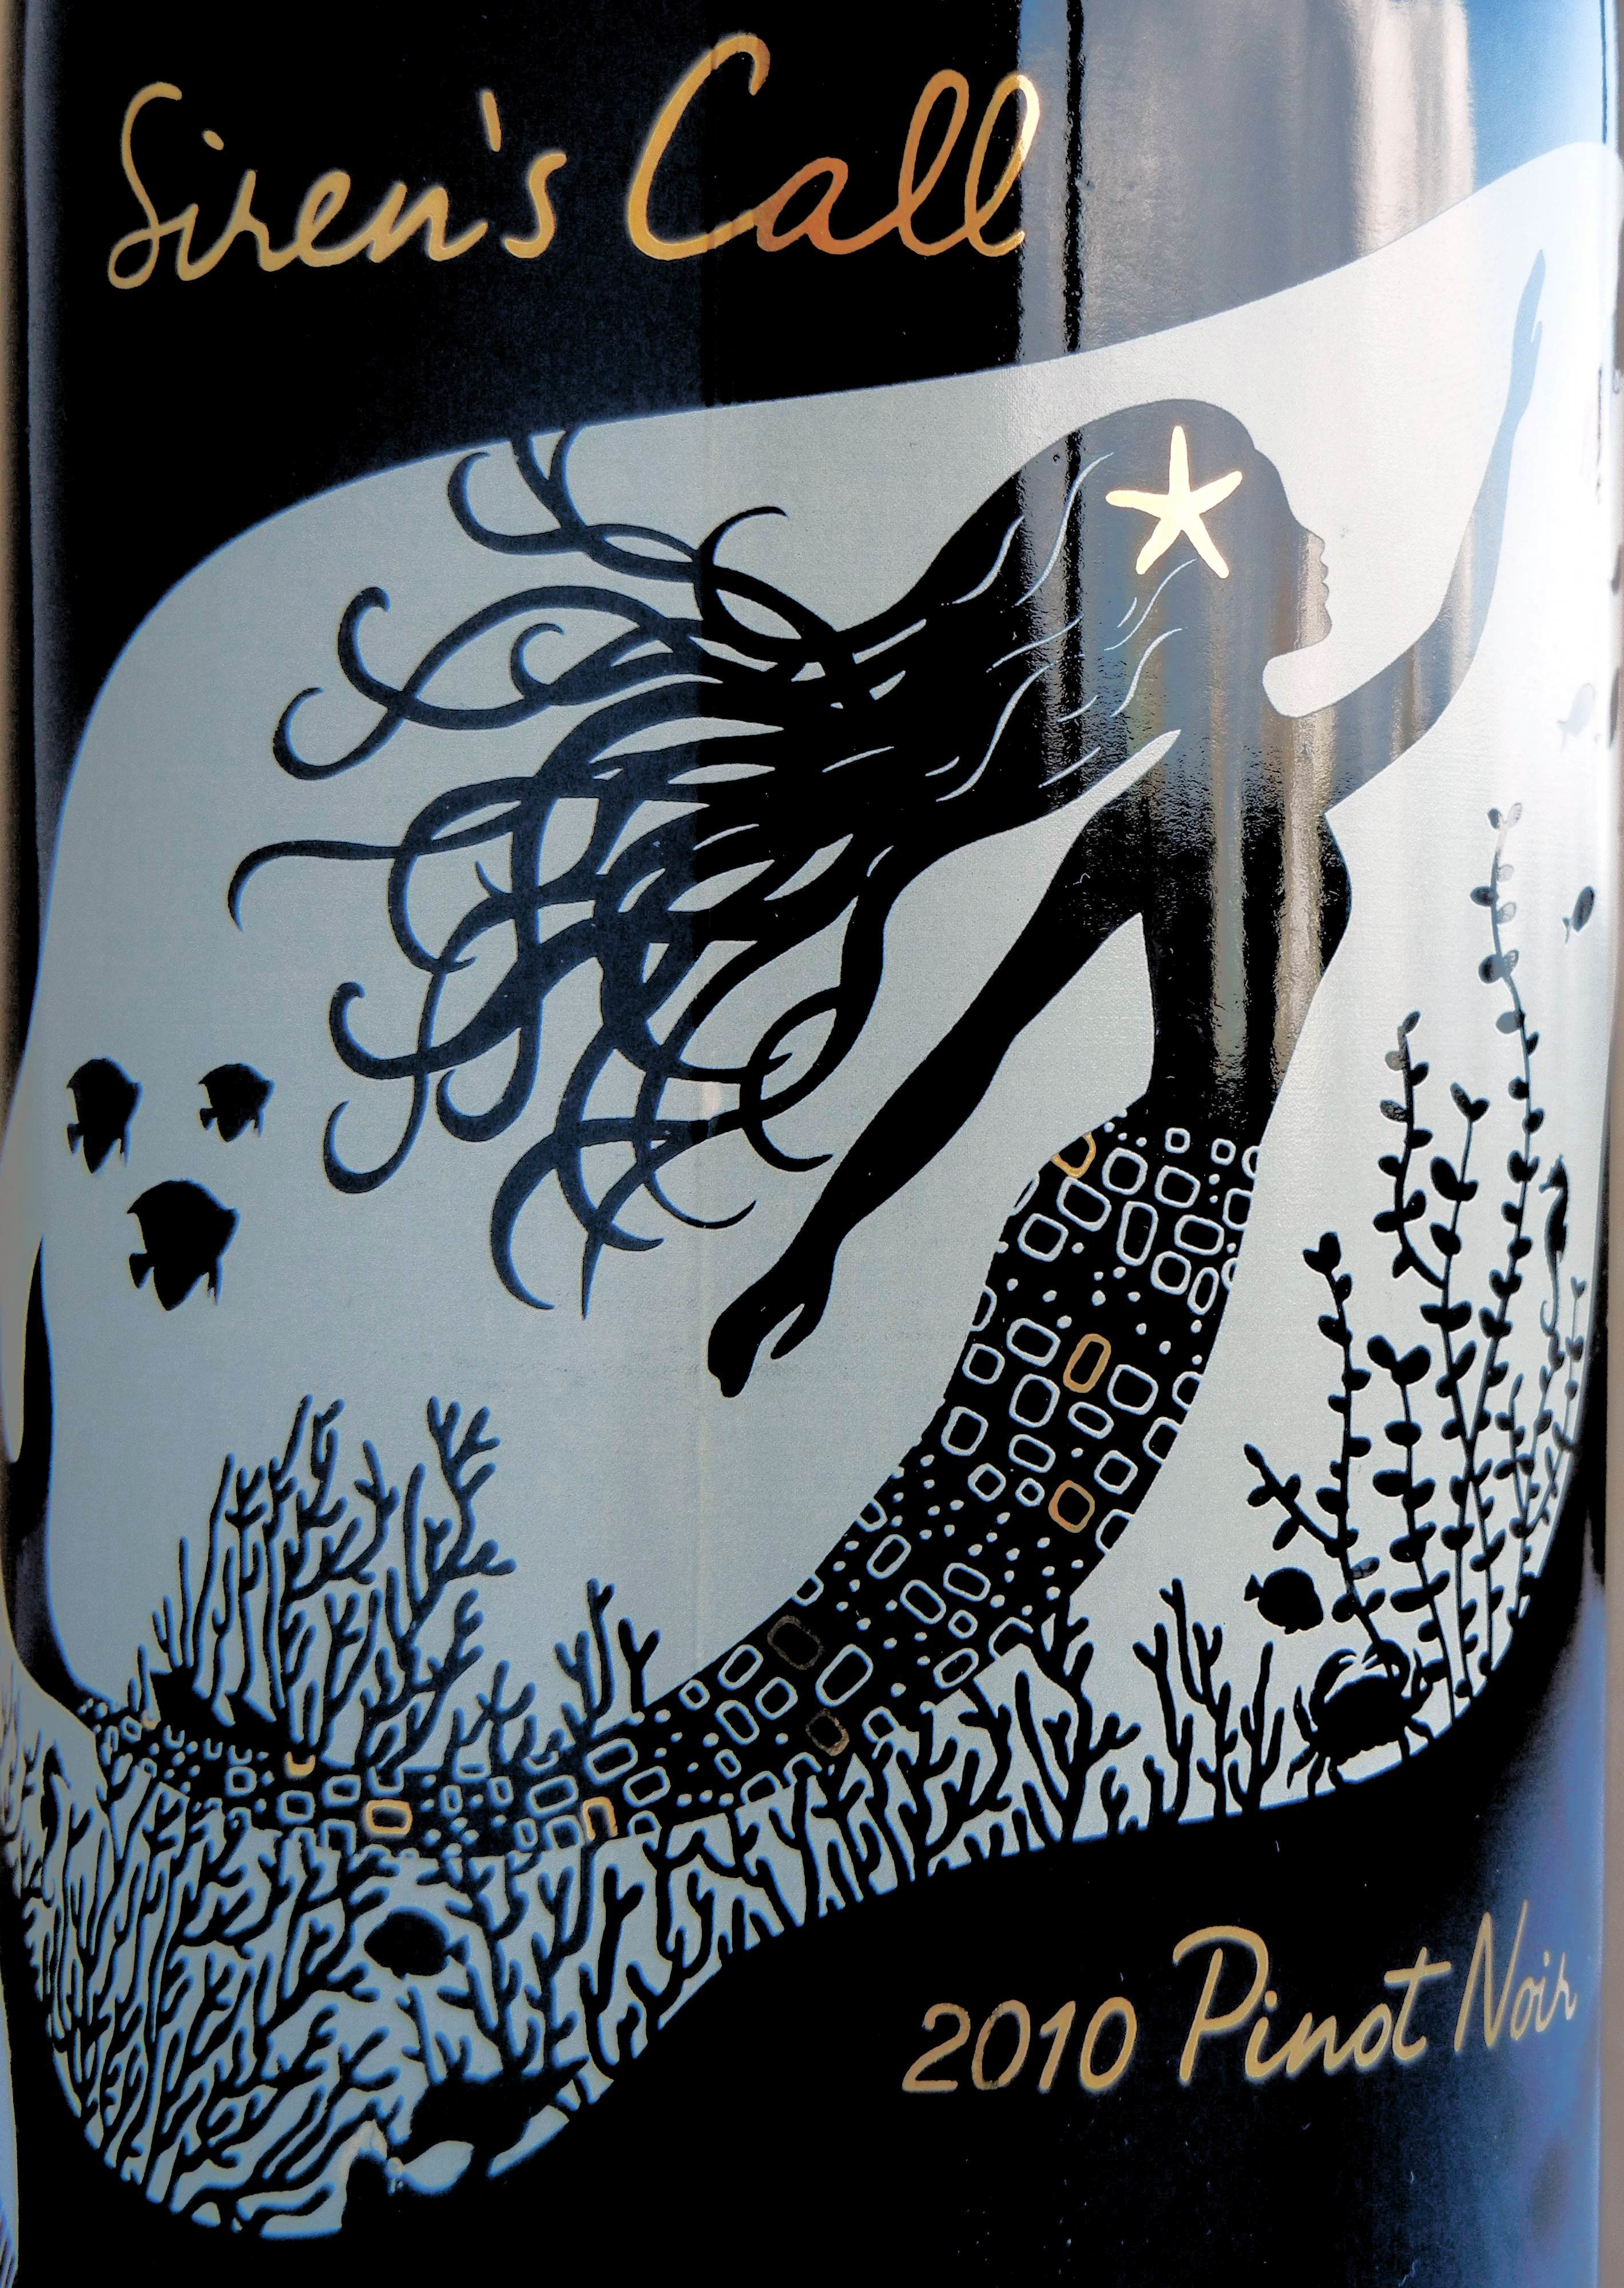 Siren's Call Pinot Noir 2010 Label - BC Pinot Noir Tasting Review 20